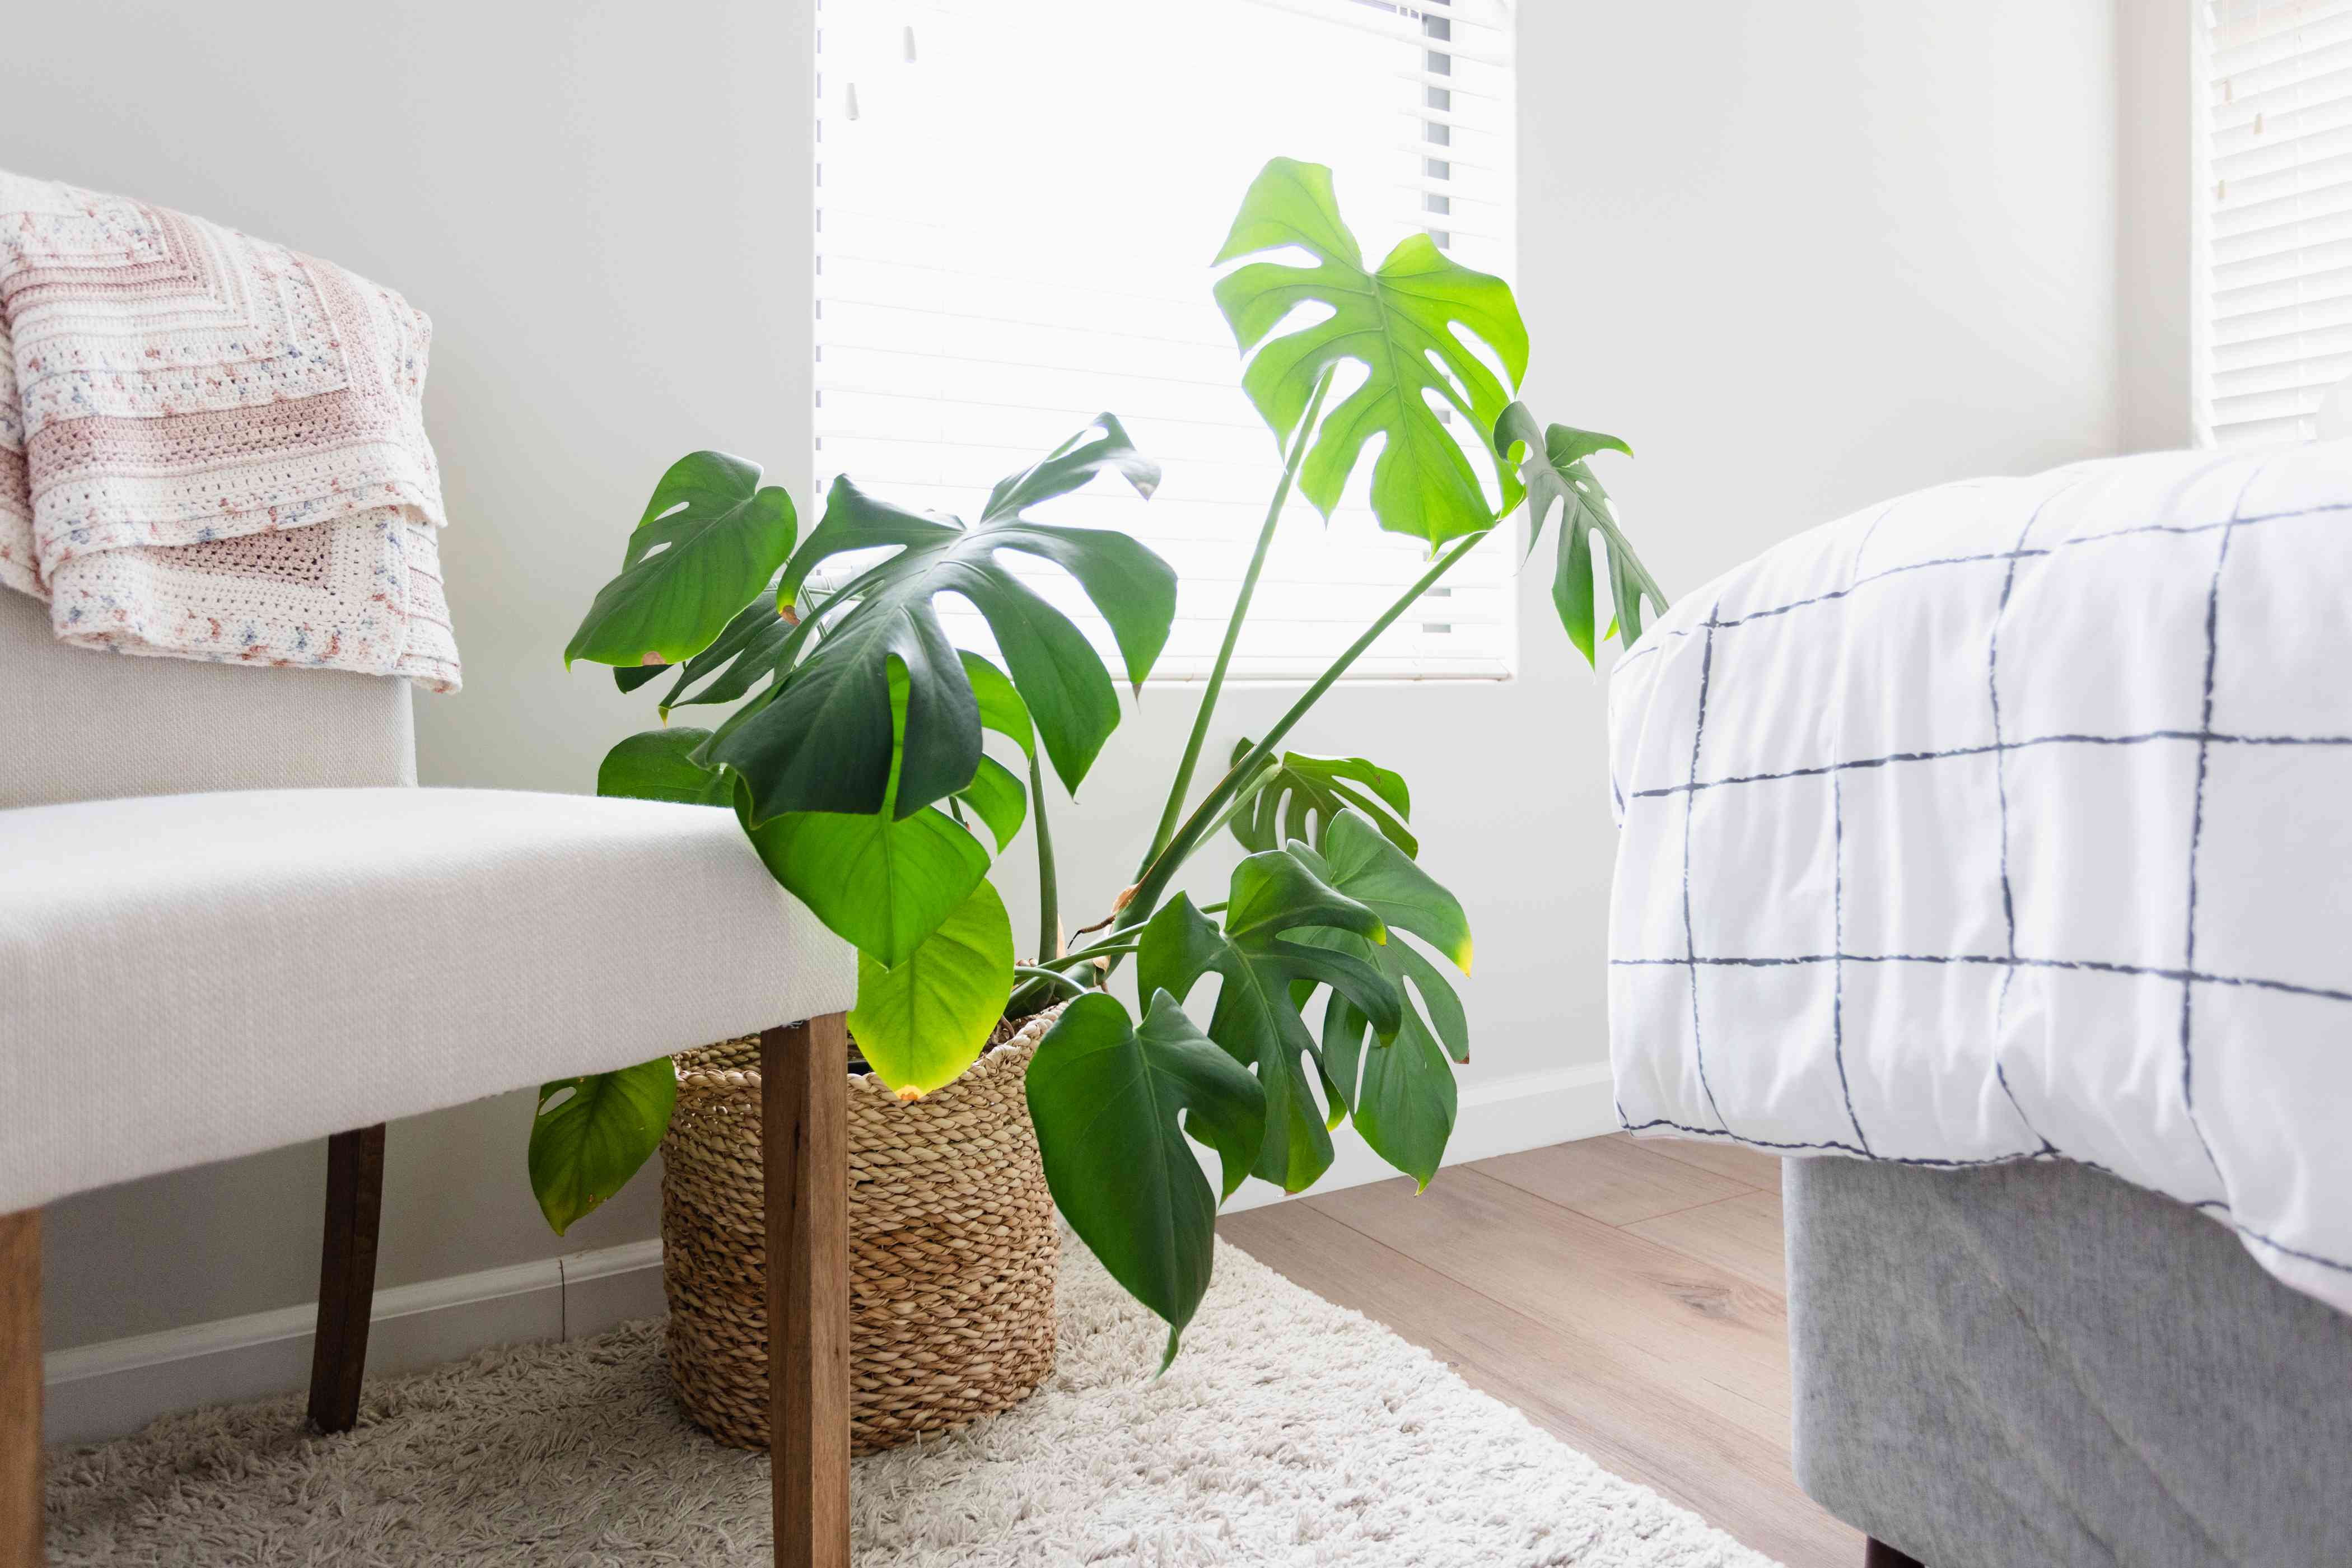 Monstera houseplant next to white chair and bed corner